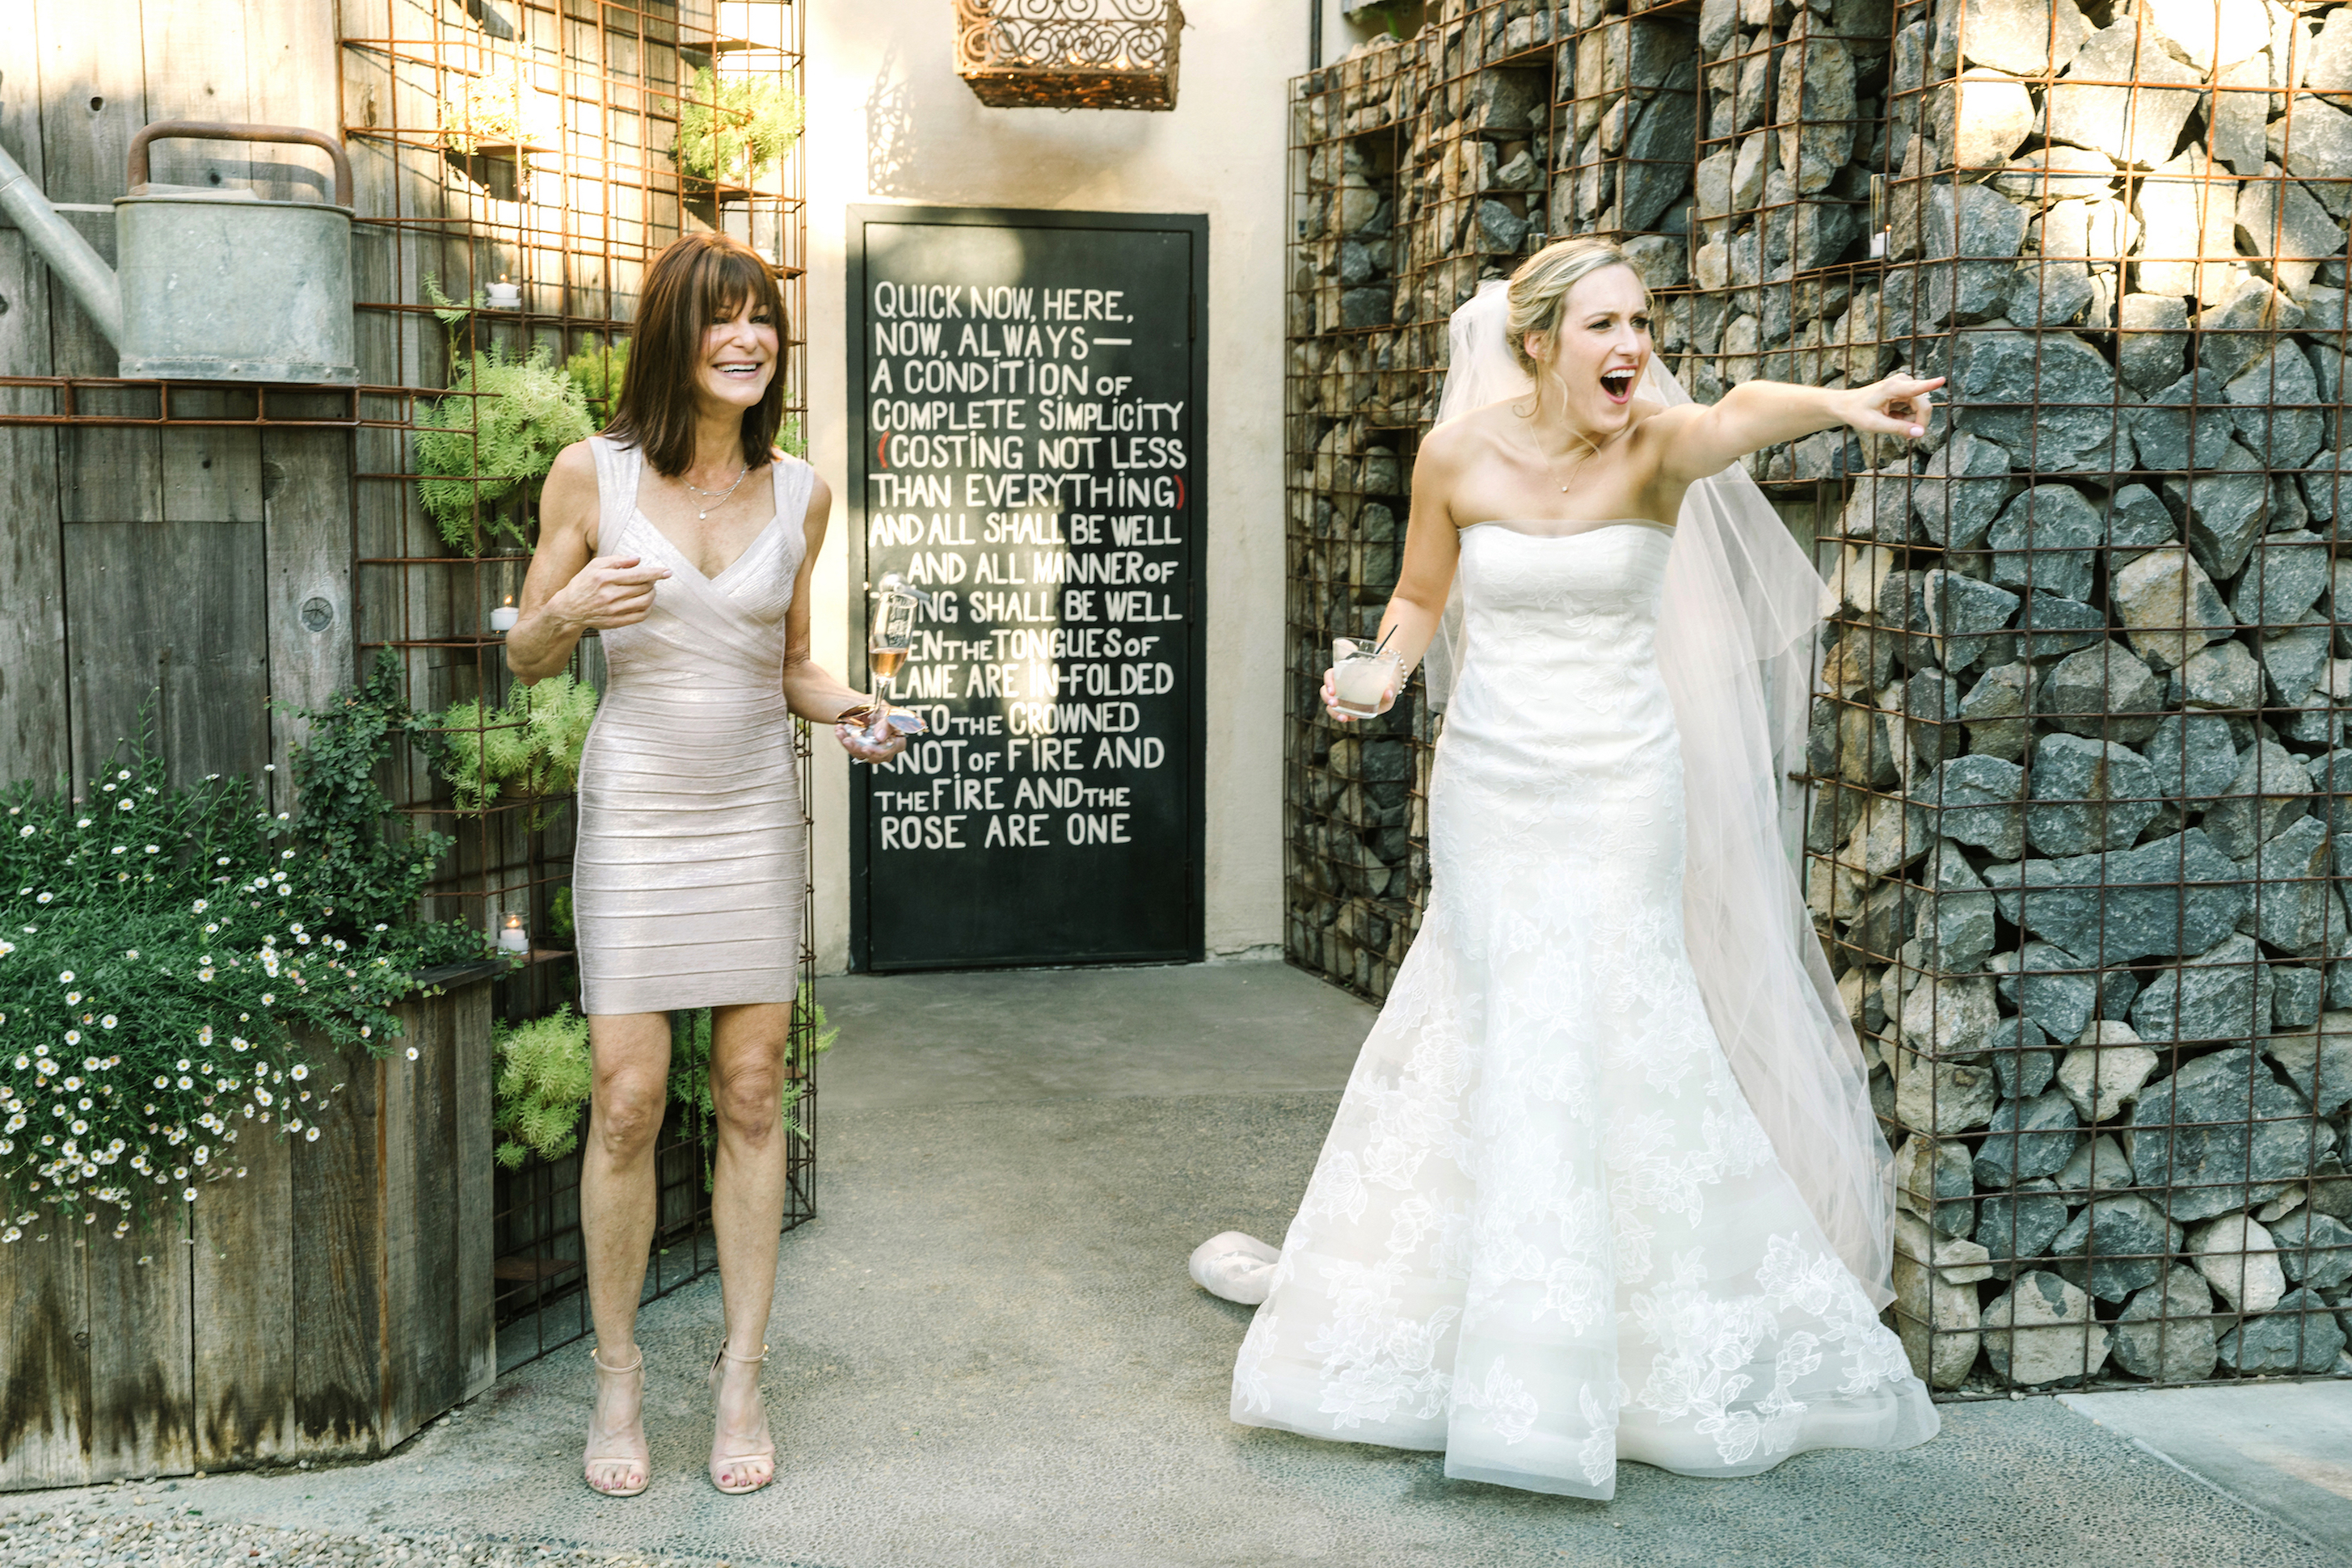 A Bride and Her Mom Holding a Drink on Her Wedding Day